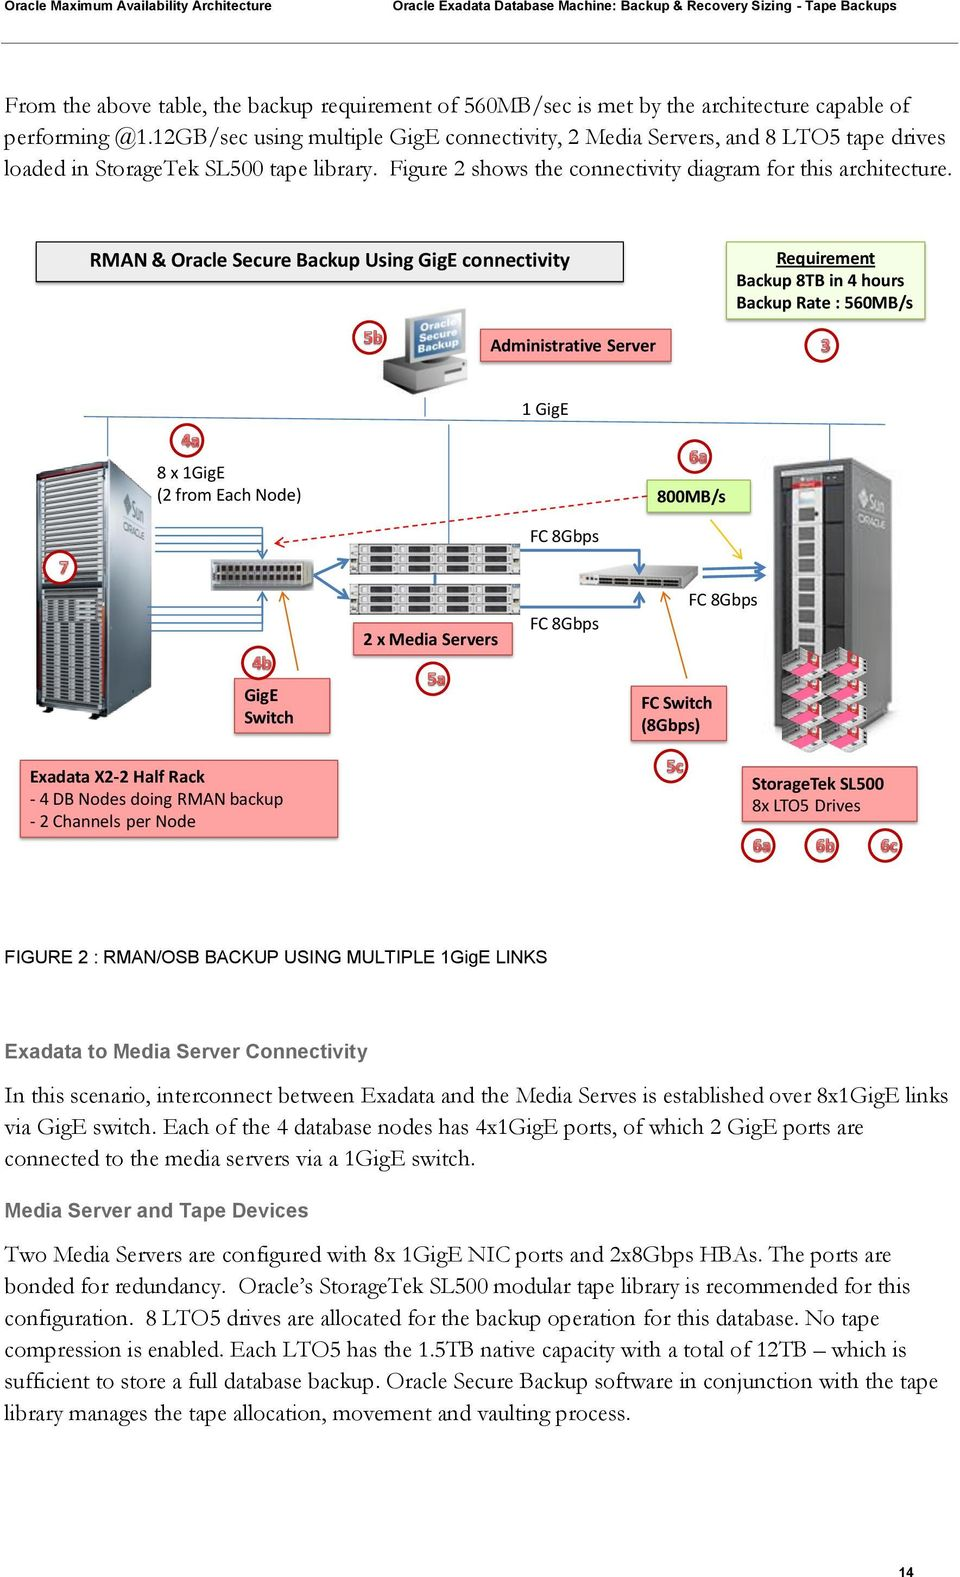 RMAN & Oracle Secure Backup Using GigE connectivity Requirement Backup 8TB in 4 hours Backup Rate : 560MB/s Administrative Server 1 GigE 8 x 1GigE (2 from Each Node) 800MB/s FC 8Gbps 2 x Media